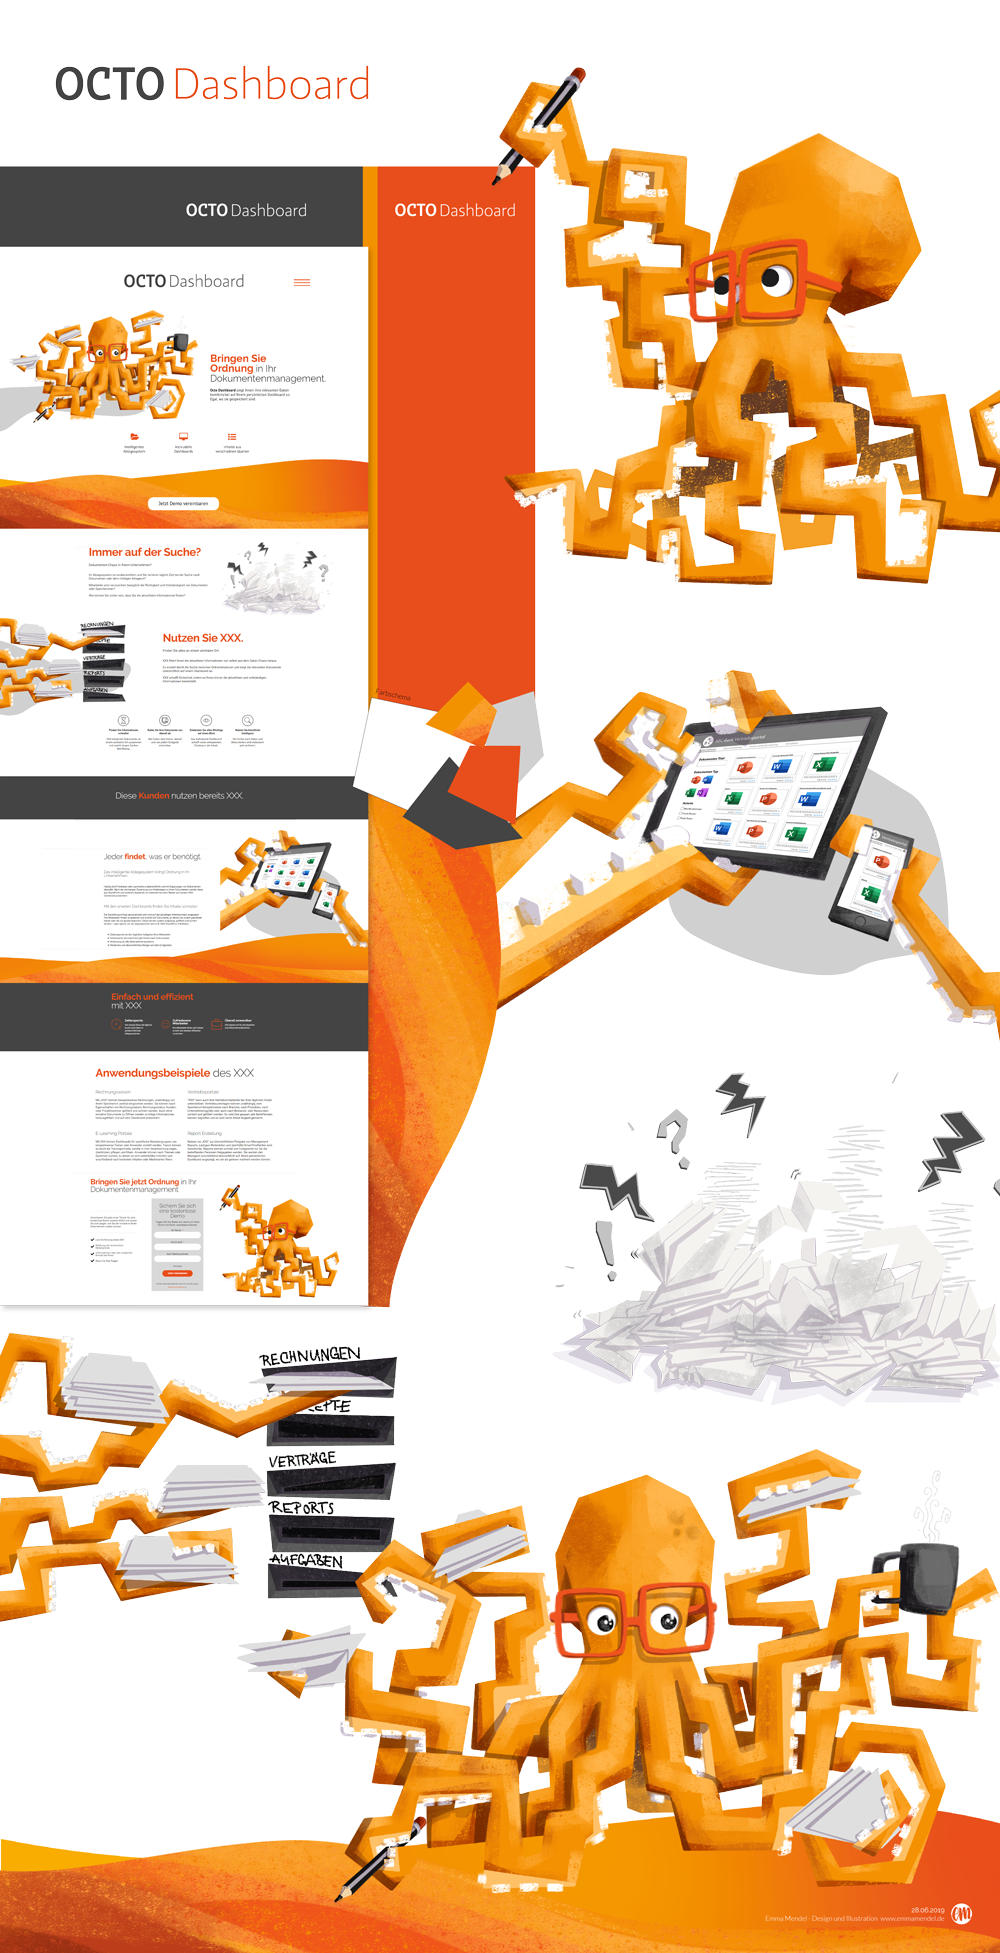 Produktdesign octo dashboard illustration oktopus orange landingpage